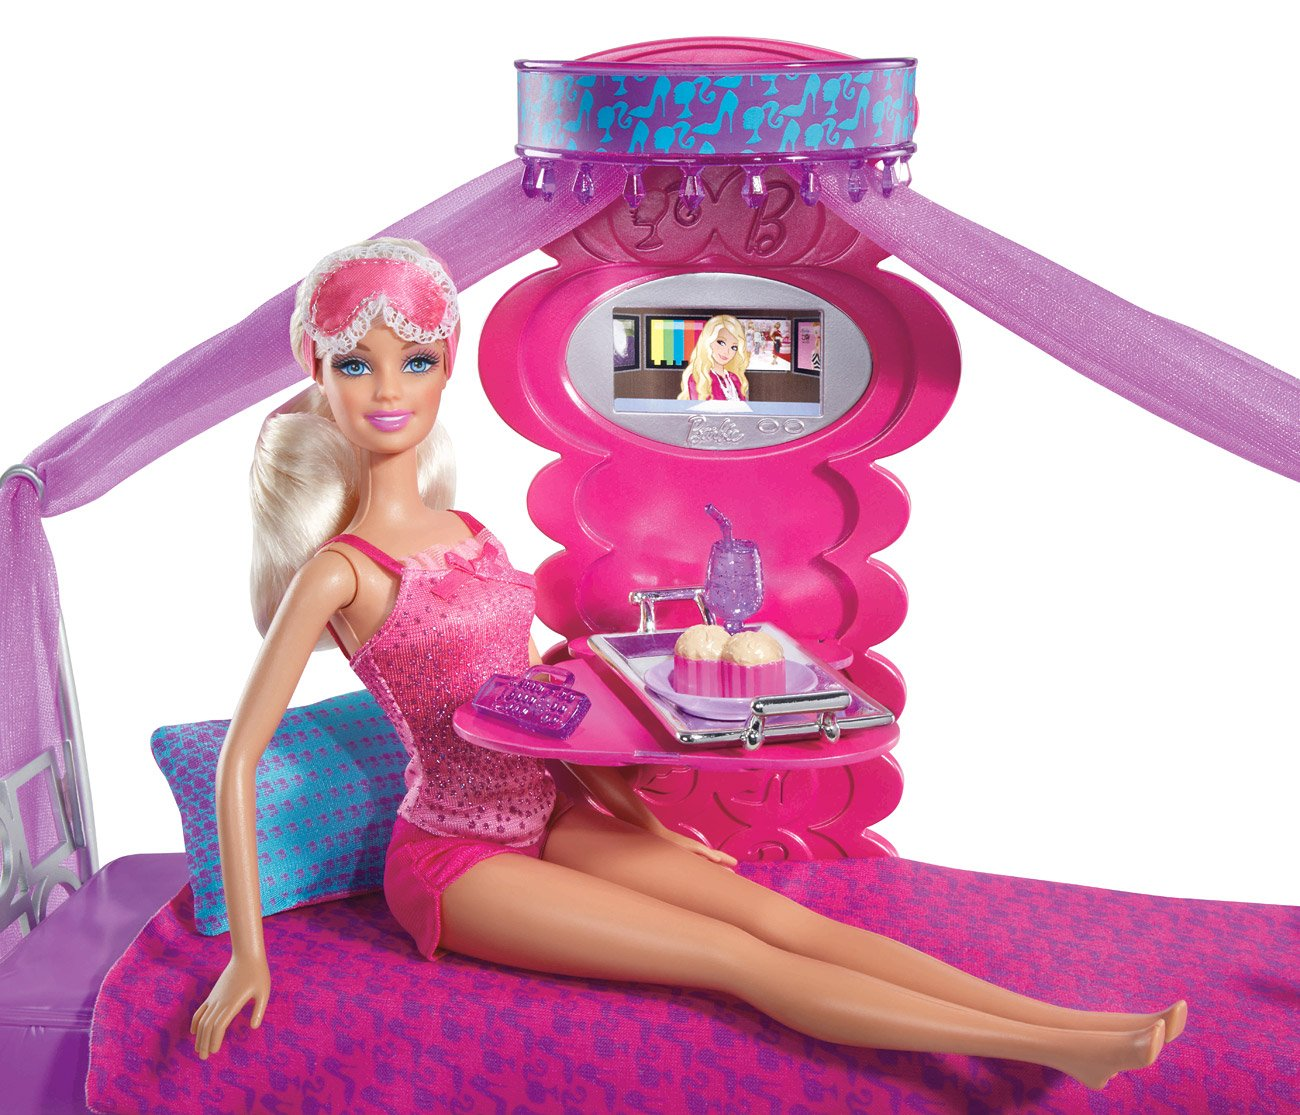 Barbie deluxe furniture stovetop to tabletop kitchen doll target - Barbie Deluxe Furniture Stovetop To Tabletop Kitchen Doll Target 8